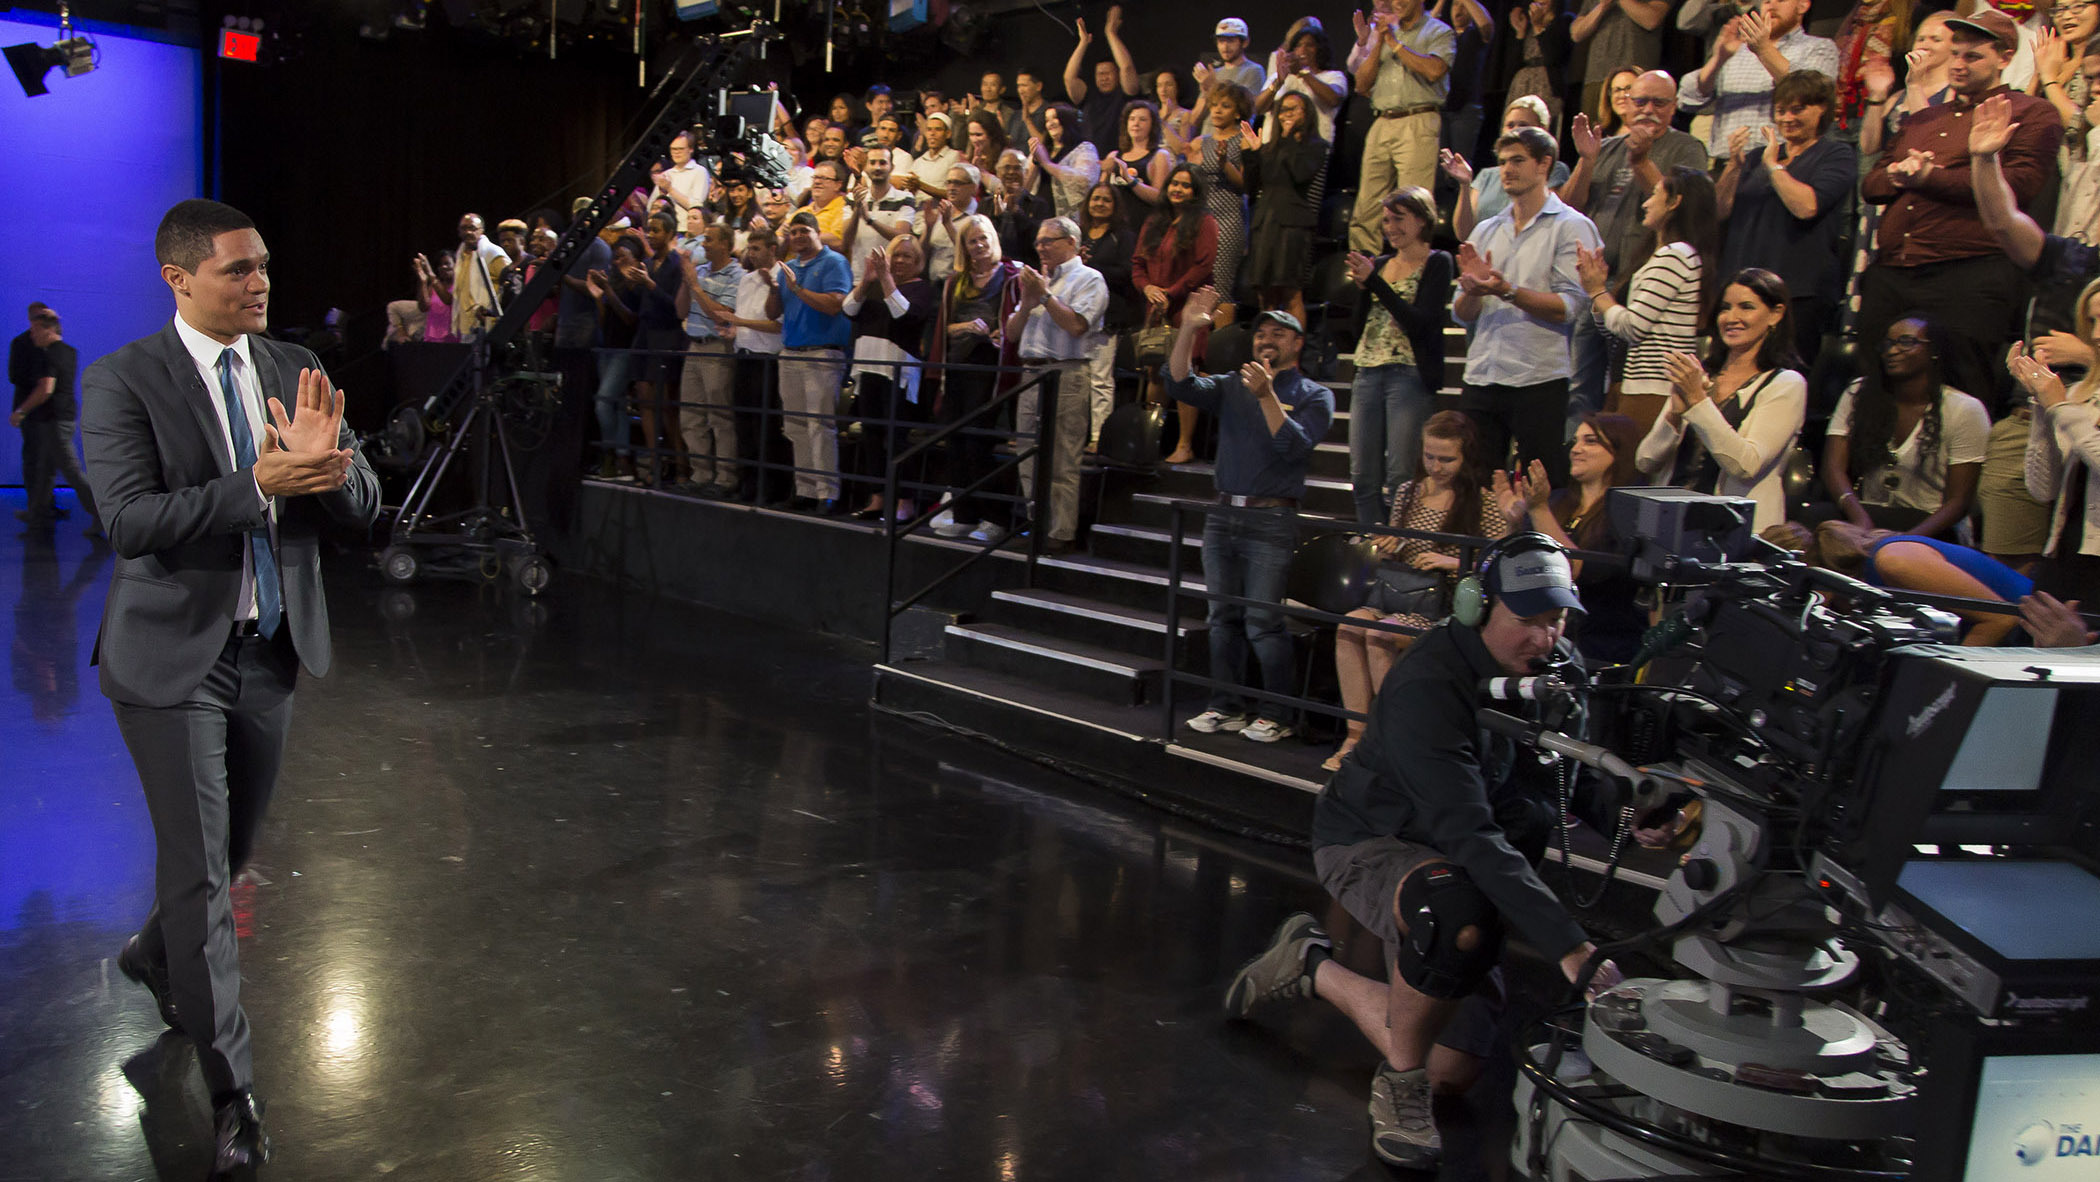 - GET FREE TICKETS TO A DAILY SHOW TAPING